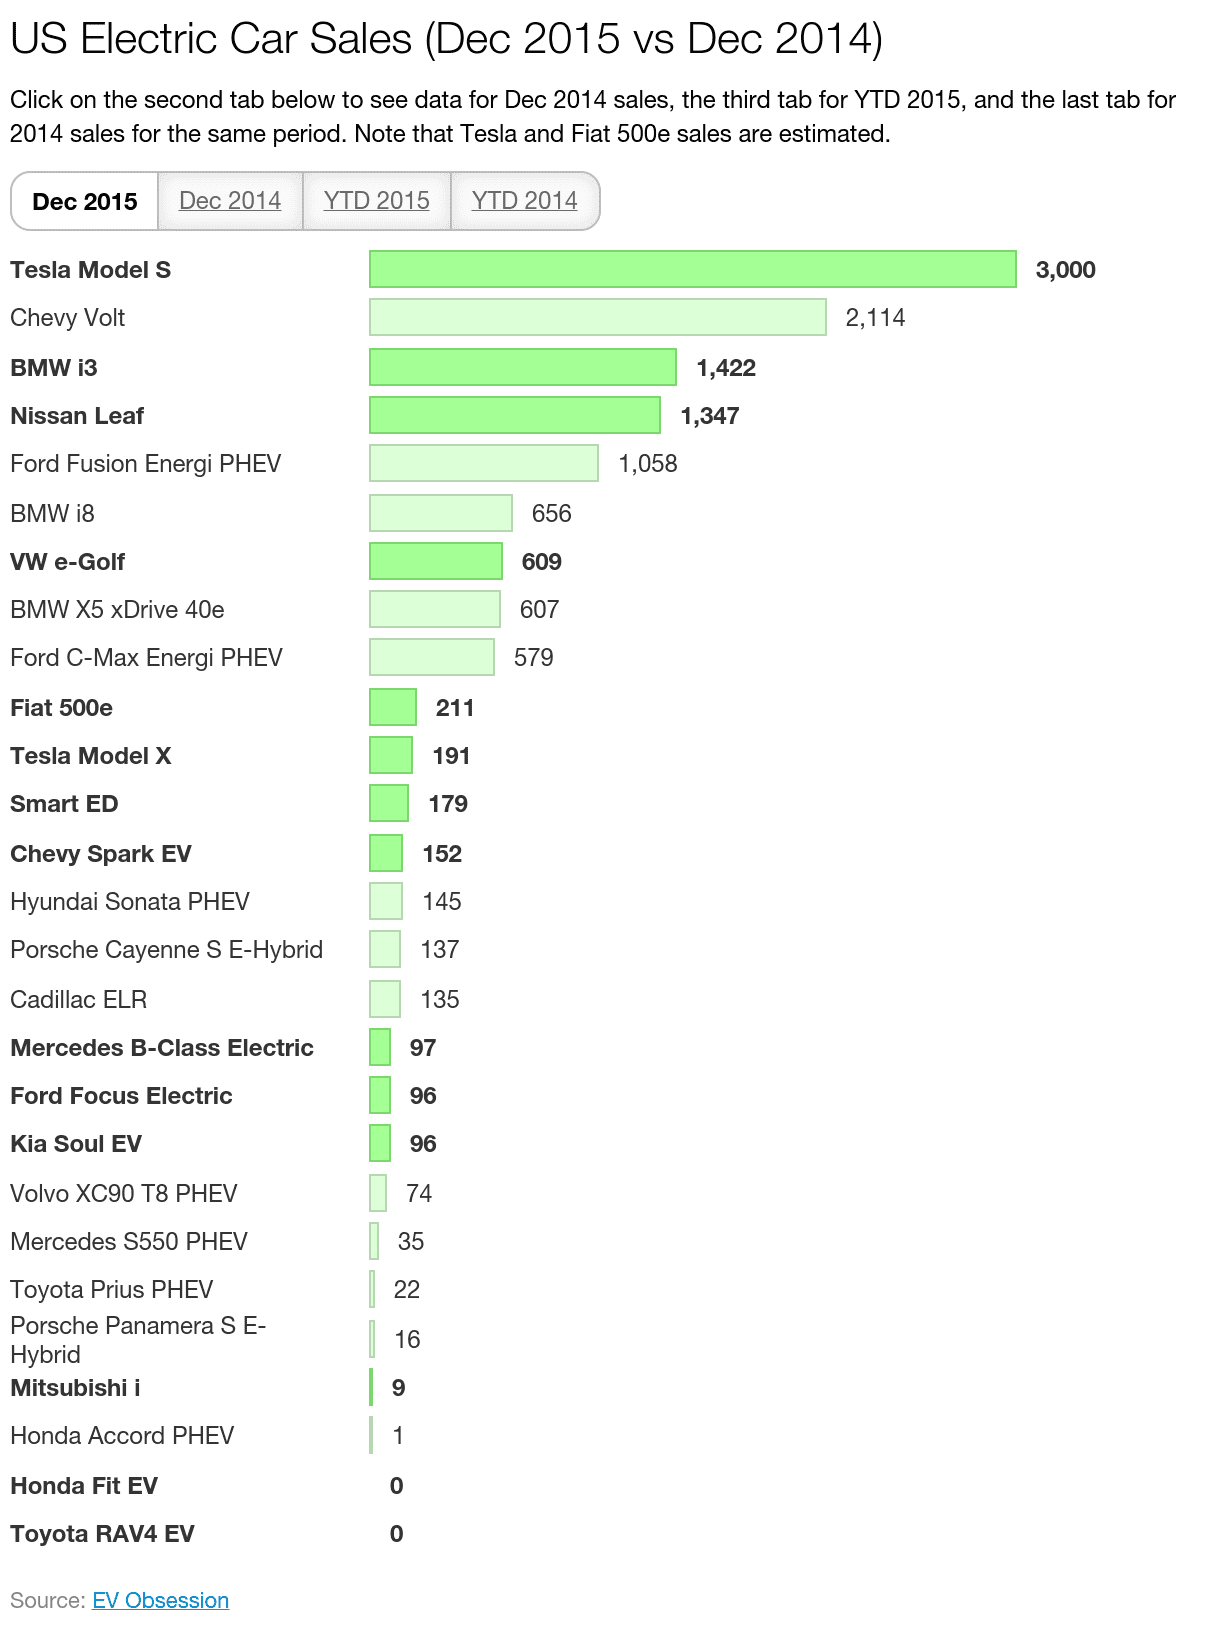 Porsche Panamera For Sale >> BMW & Tesla Have Stellar Electric Car Sales Month & Year (December Sales Report) | CleanTechnica